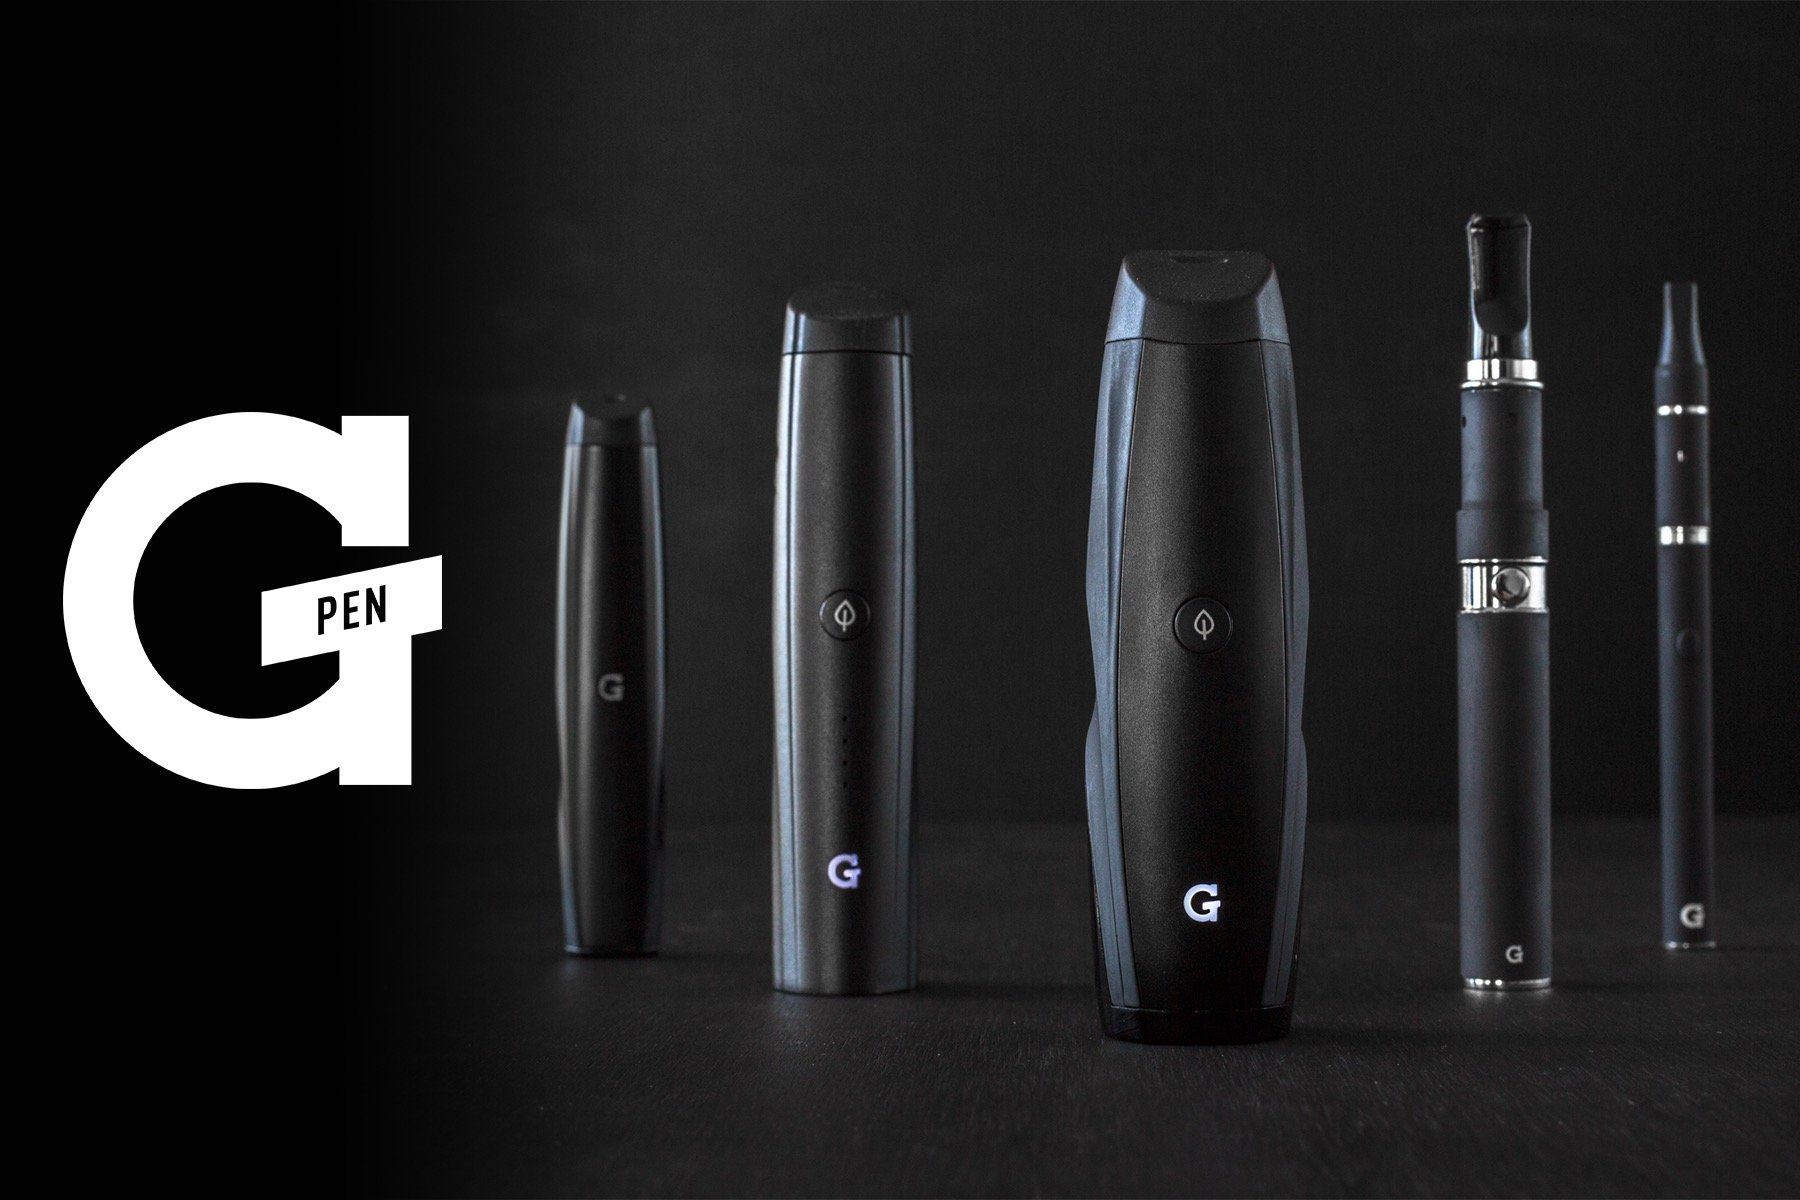 *Purchase a Gio Cartridge and receive a custom engraved G-Pen Battery for only $0.01.